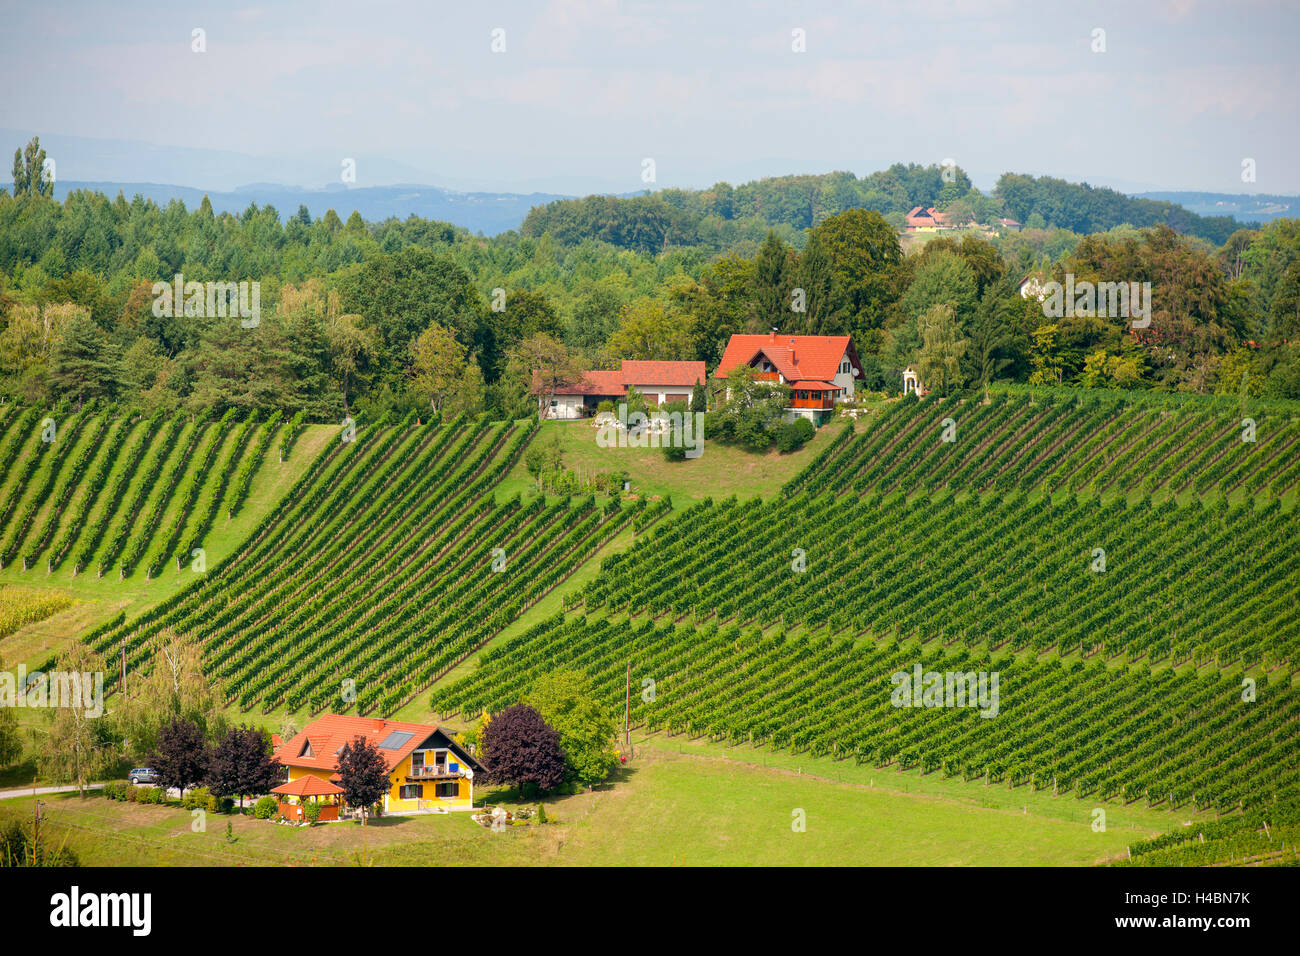 Austria, Styria, area of Leibnitz, scenery in the Südsteirischen Weinstrasse to the south of Gamlitz - Stock Image